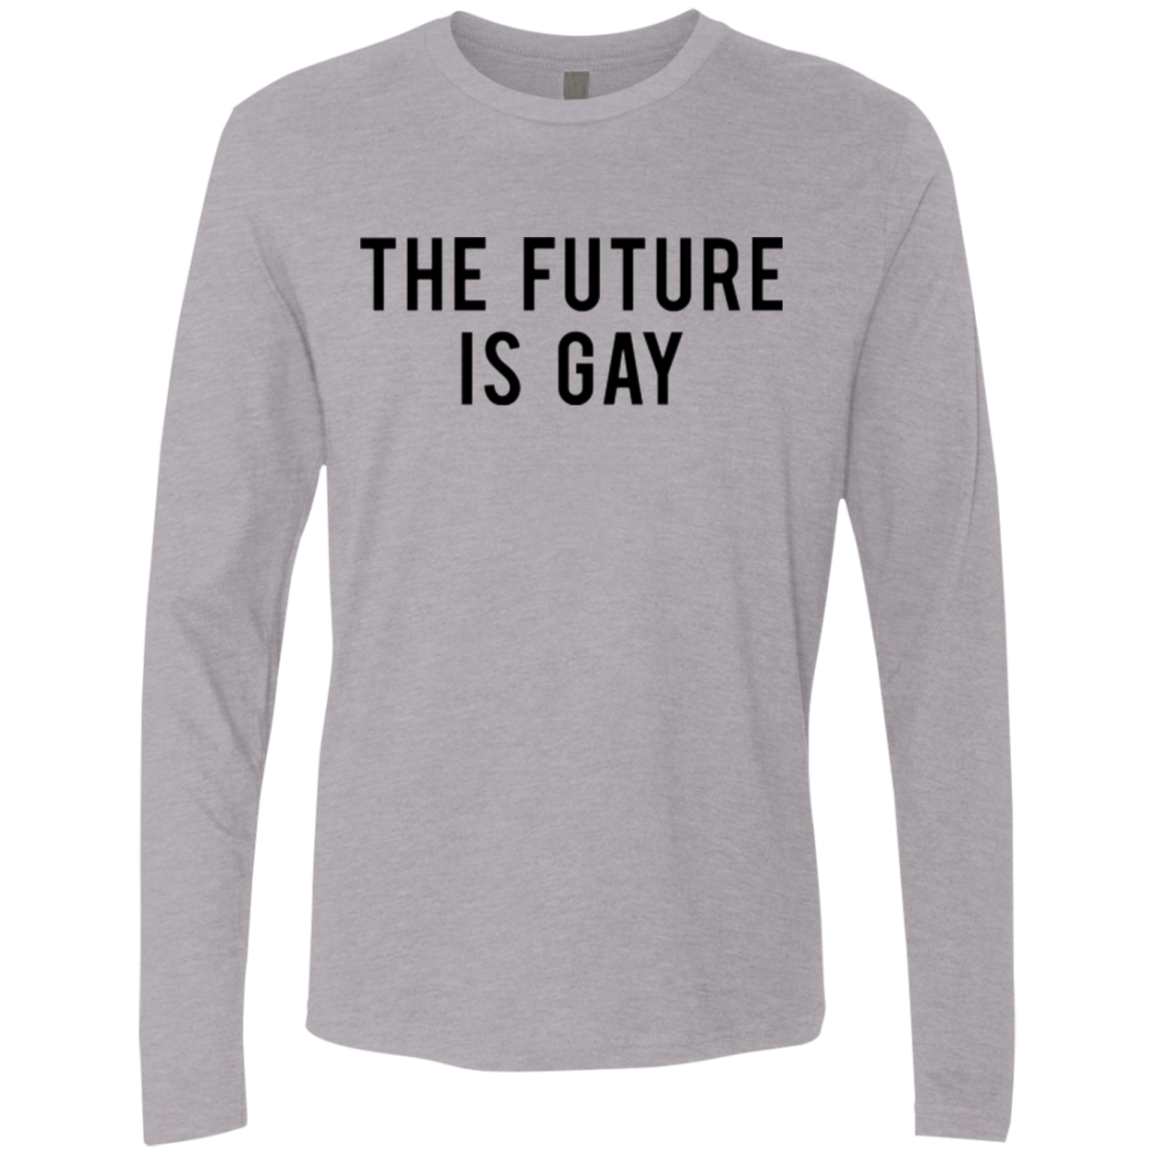 The Future is Gay Men's Long Sleeve Tee